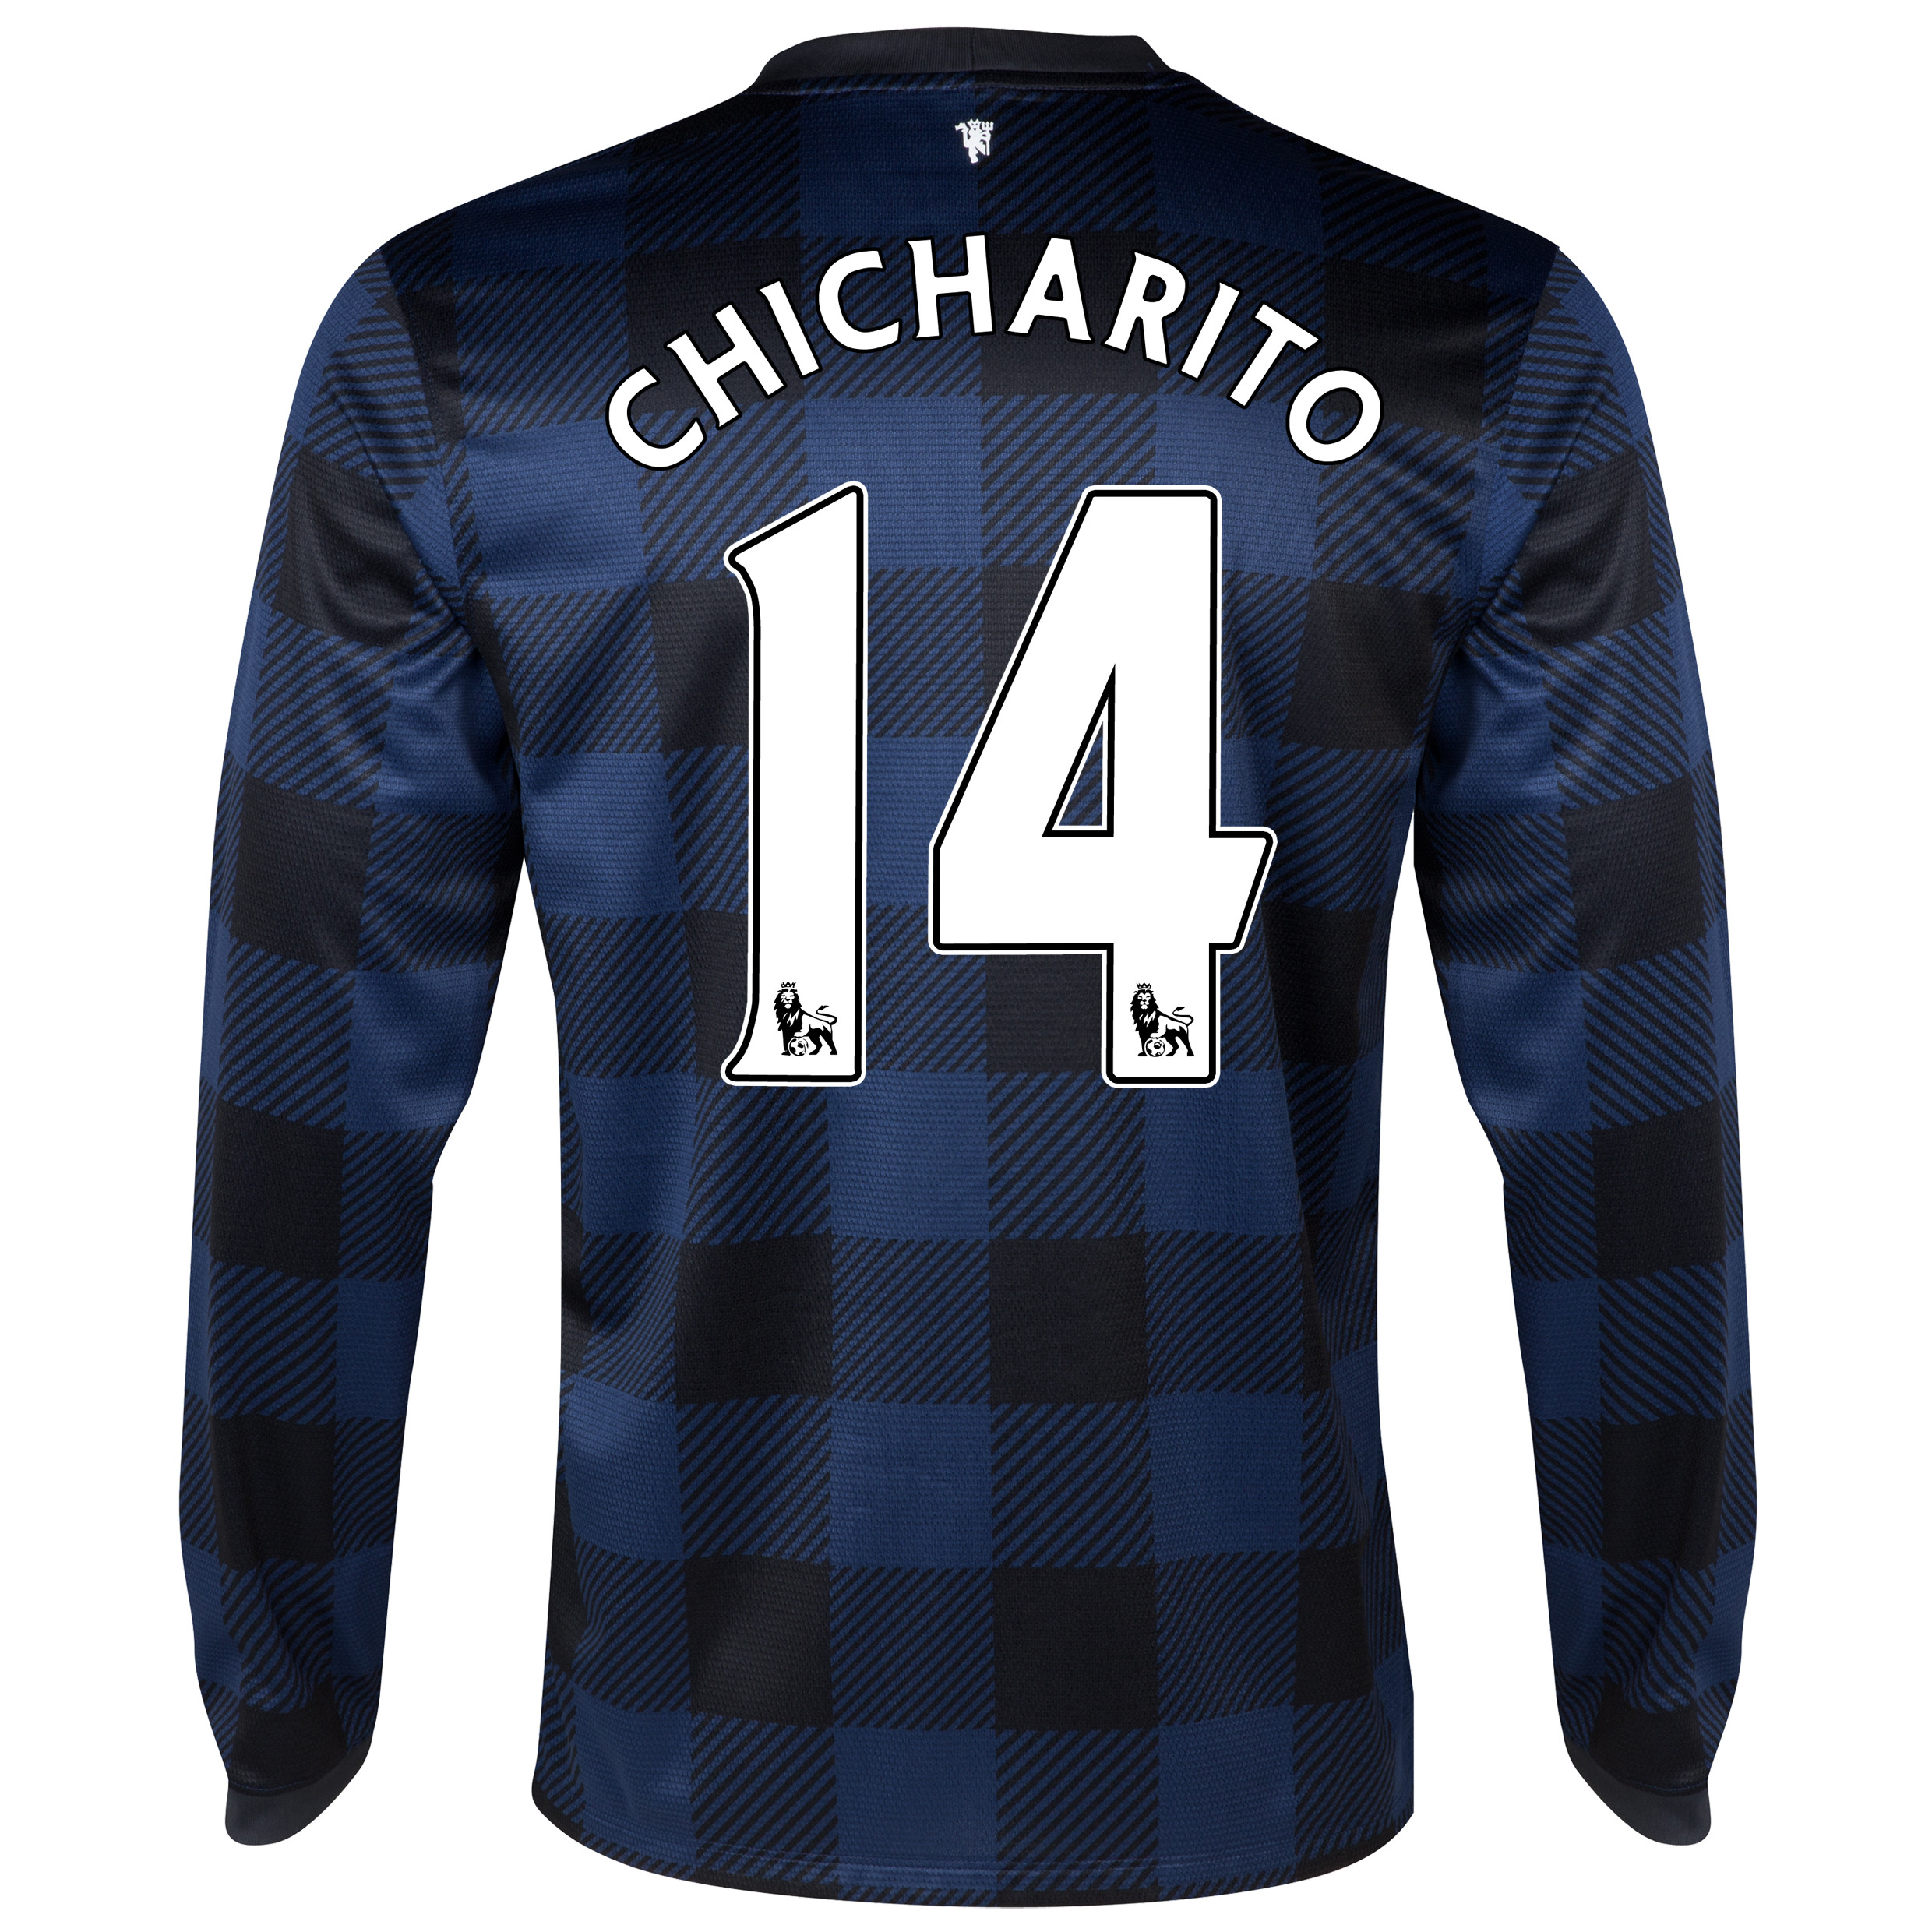 Manchester United Away Shirt 2013/14 - Long Sleeved with Chicharito 14 printing